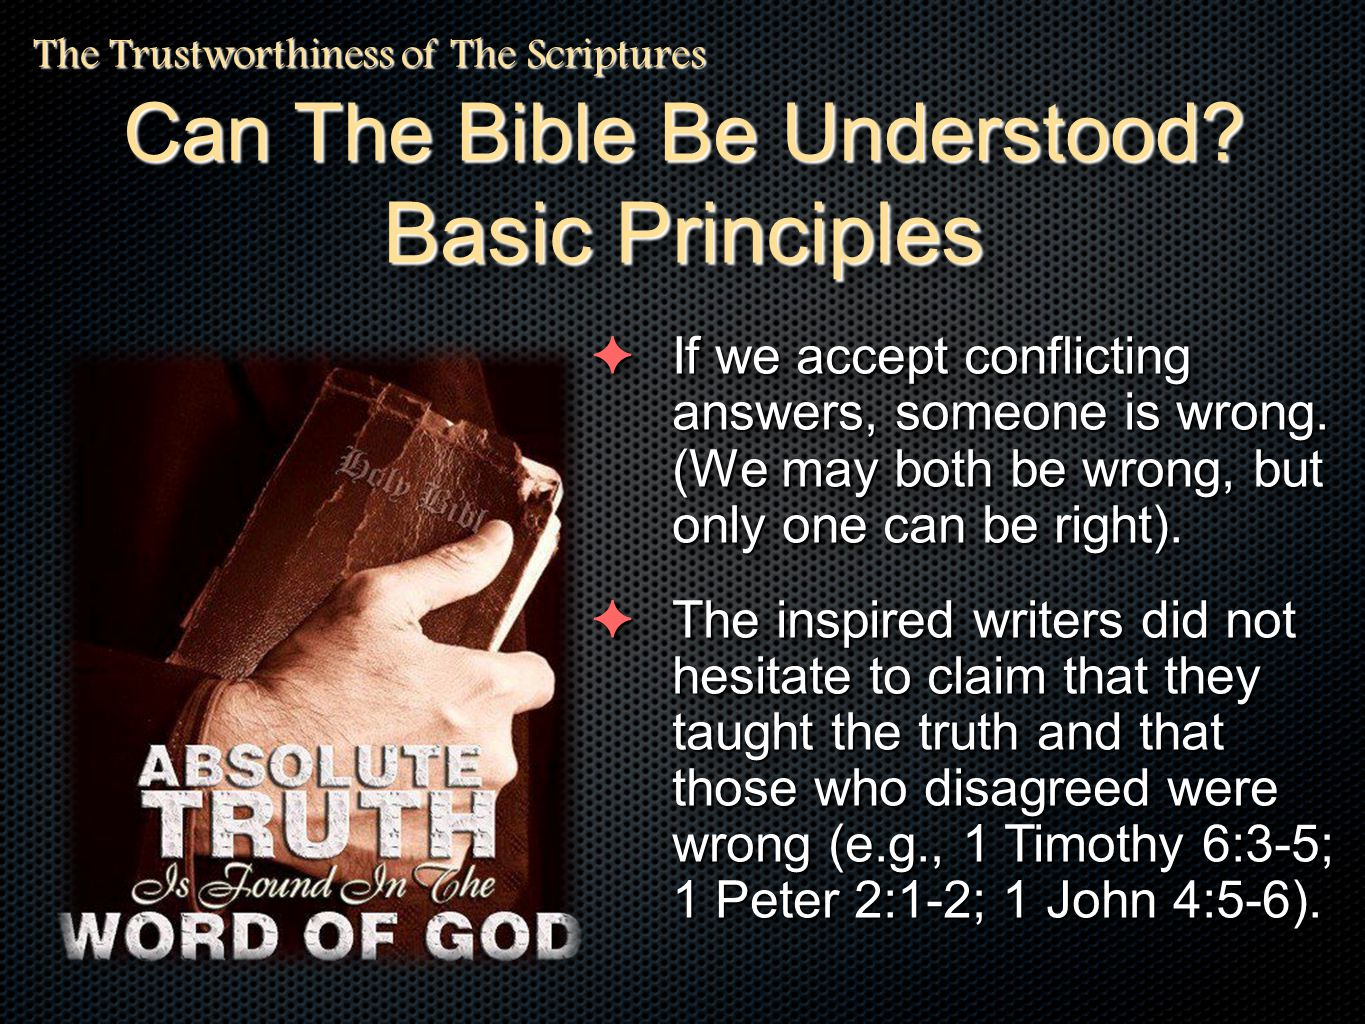 ✦ Only Spirit-filled people can understand it - 1 Co 2:14 ✦ Spirit filled preachers are necessary to explain the Bible - (Acts 8:31; but - Eph 3:3-5) ✦ Because so many do not understand it alike... - (1 Cor.